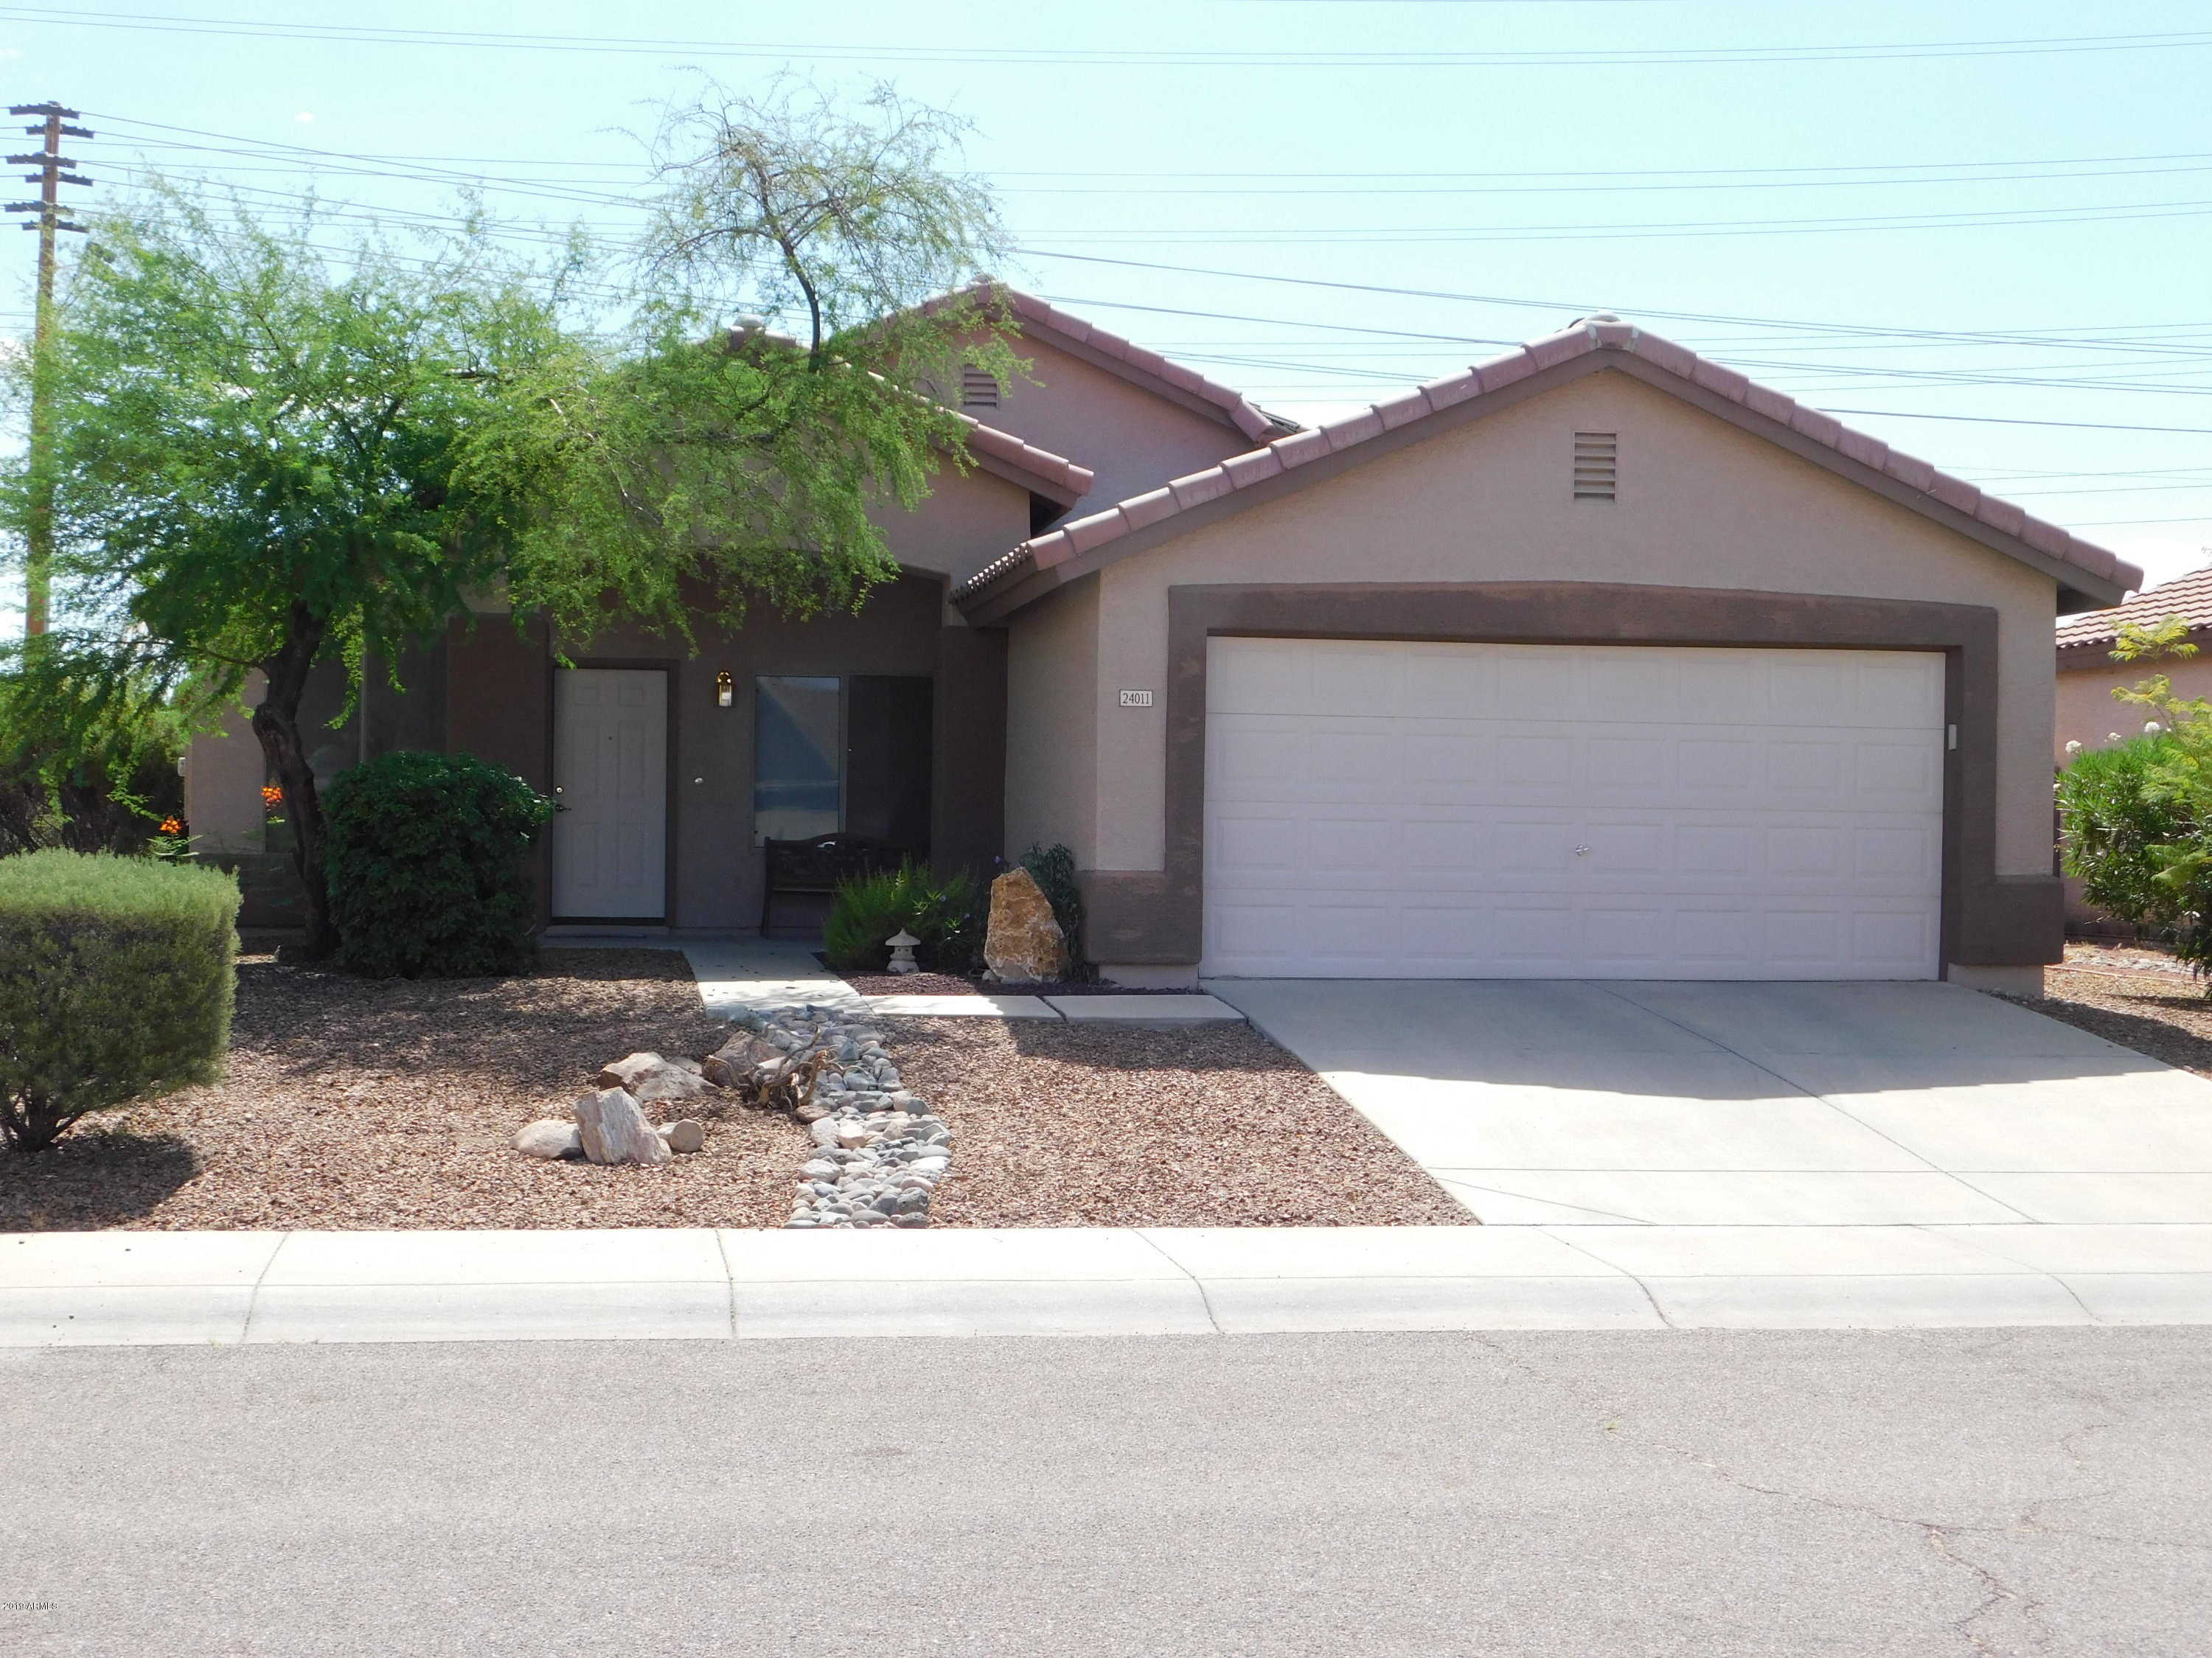 $272,000 - 2Br/2Ba - Home for Sale in Parcel 3b At North Canyon Ranch, Glendale